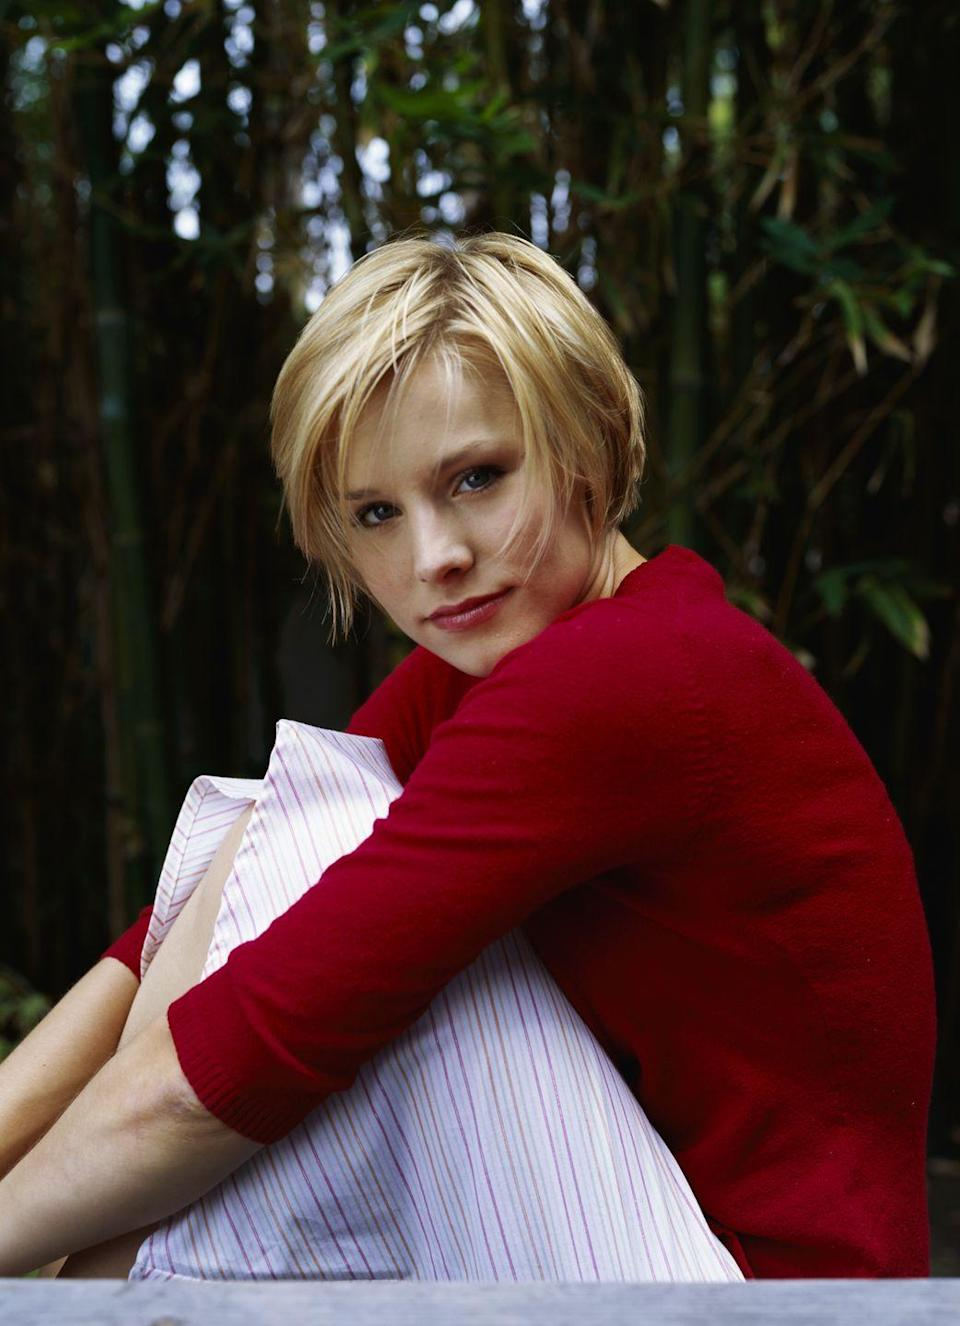 <p>Whether you know her from <em>Veronica Mars</em> or as Anna from <em>Frozen, </em>Kristen Bell's TV and film roles have made her a household name. But in 2001, she made her debut on Broadway in <em>The Adventures of Tom Sawyer</em><em>. </em>She decided to move to Los Angeles in 2002 and started acting on screen in <em>Gracie's Choice </em>and <em>Spartan. </em></p>